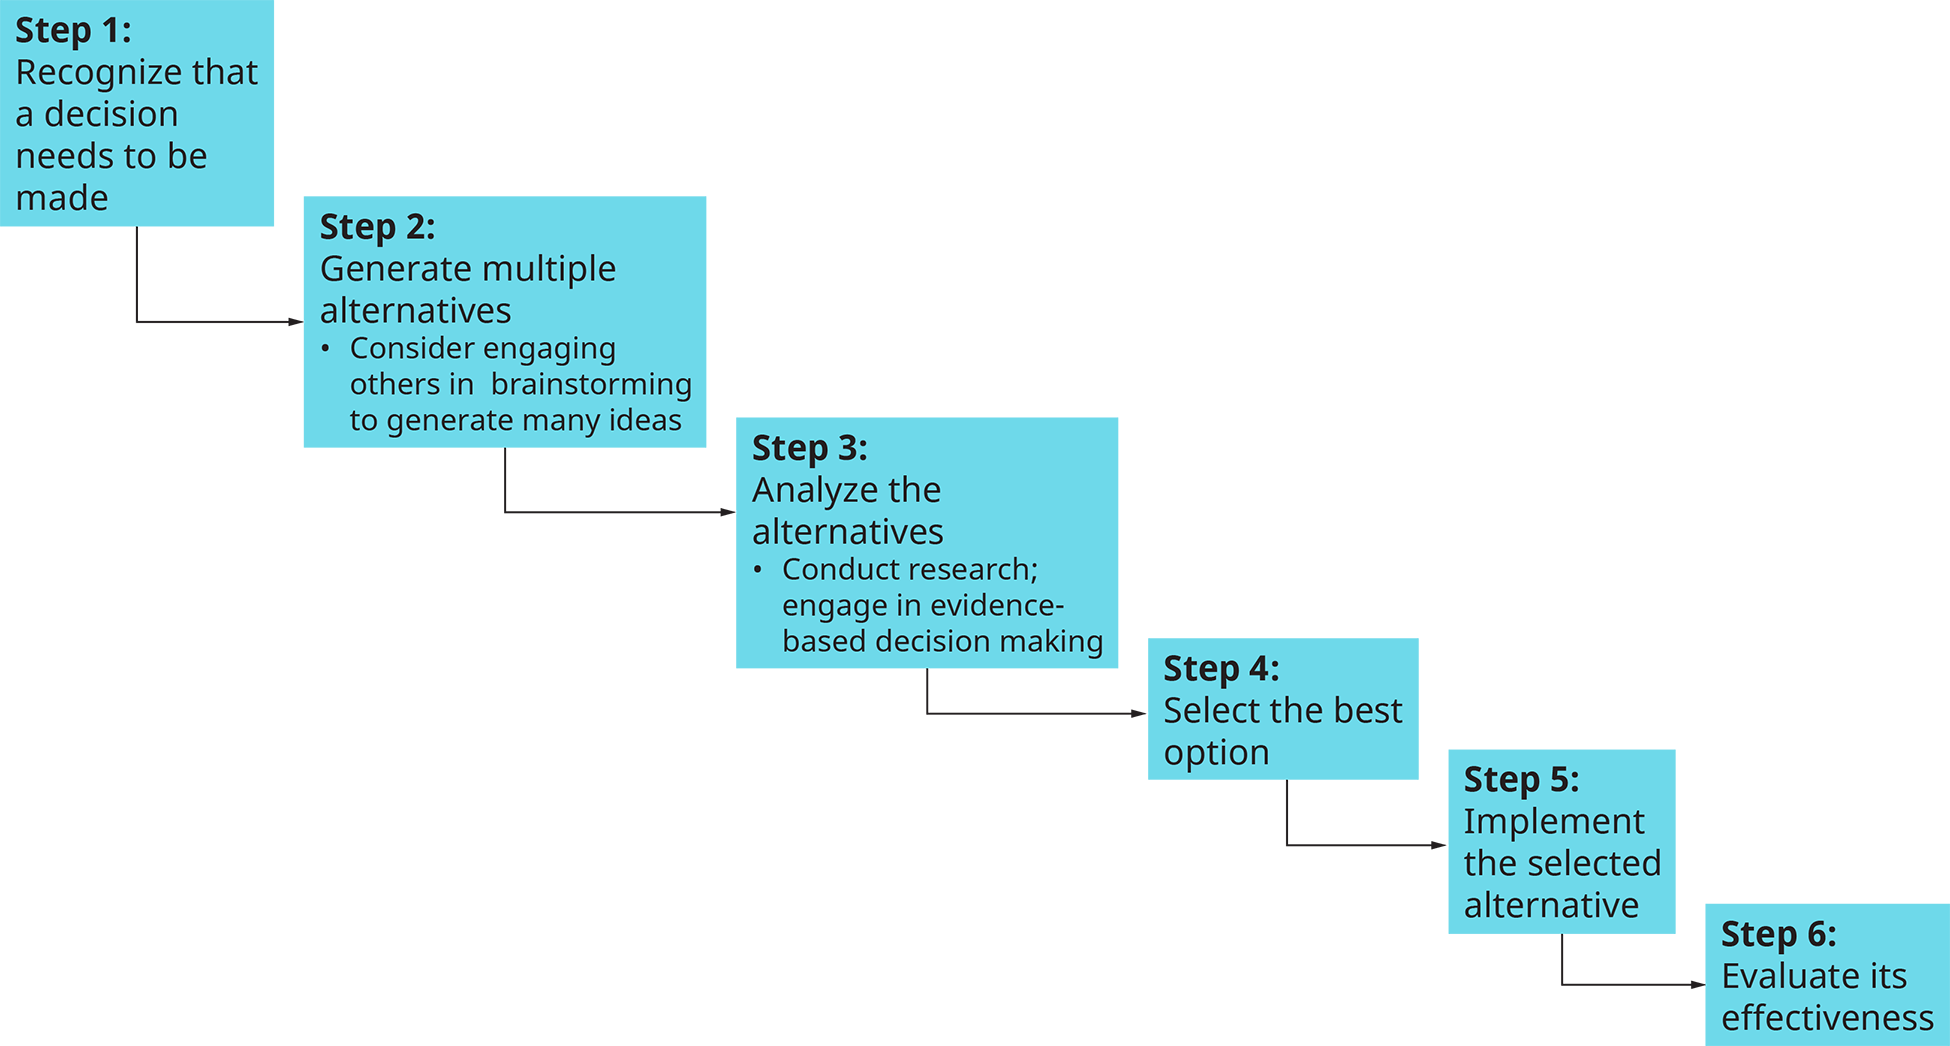 A flowchart shows the six steps in the decision-making process.